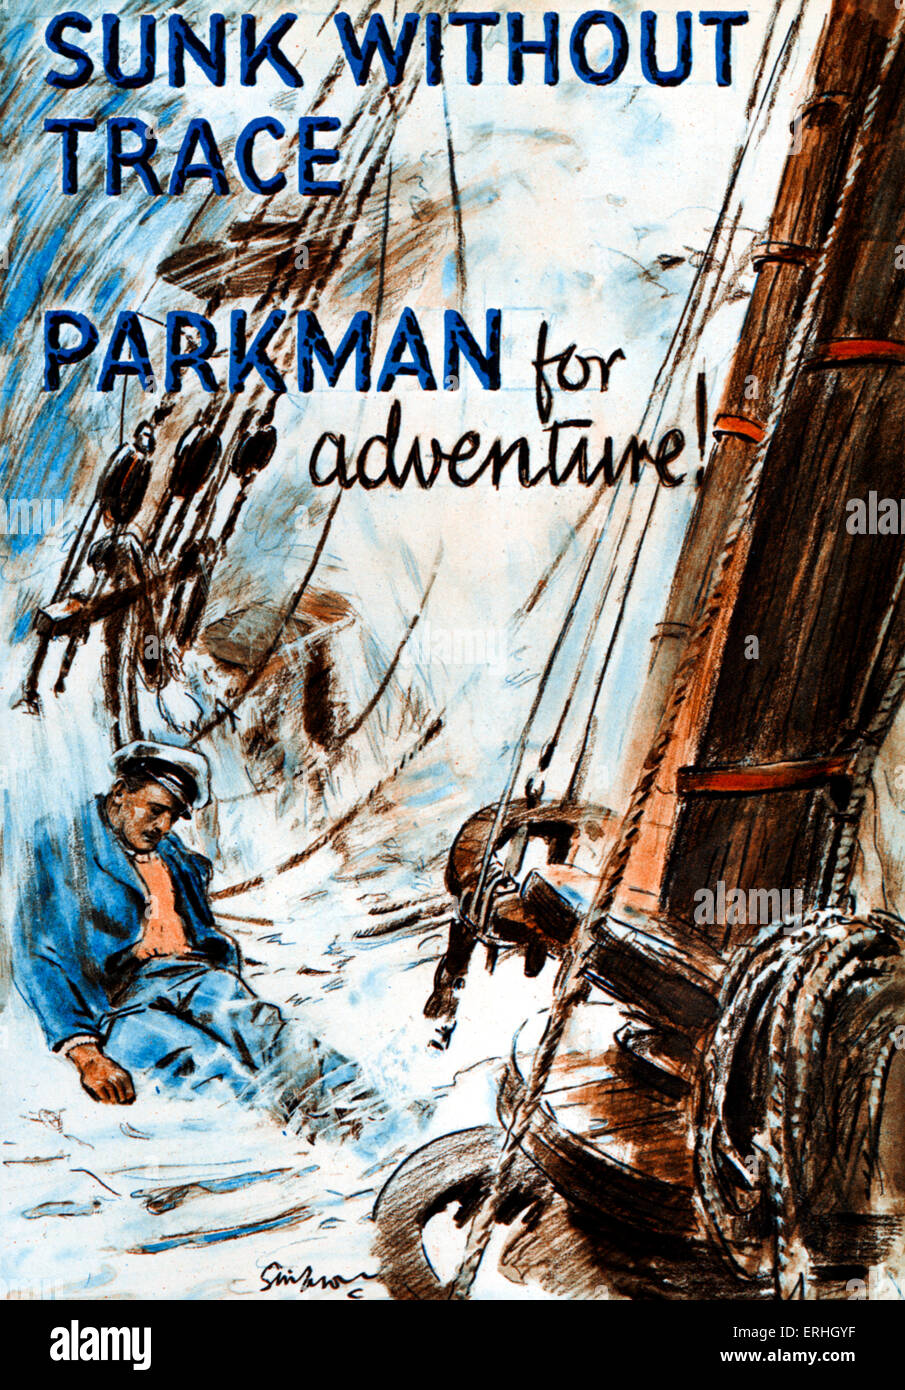 'Sunk Without Trace' by Sydney M. Parkman. Boys Own Adventure story book cover shows boat in a stormy sea - Stock Image